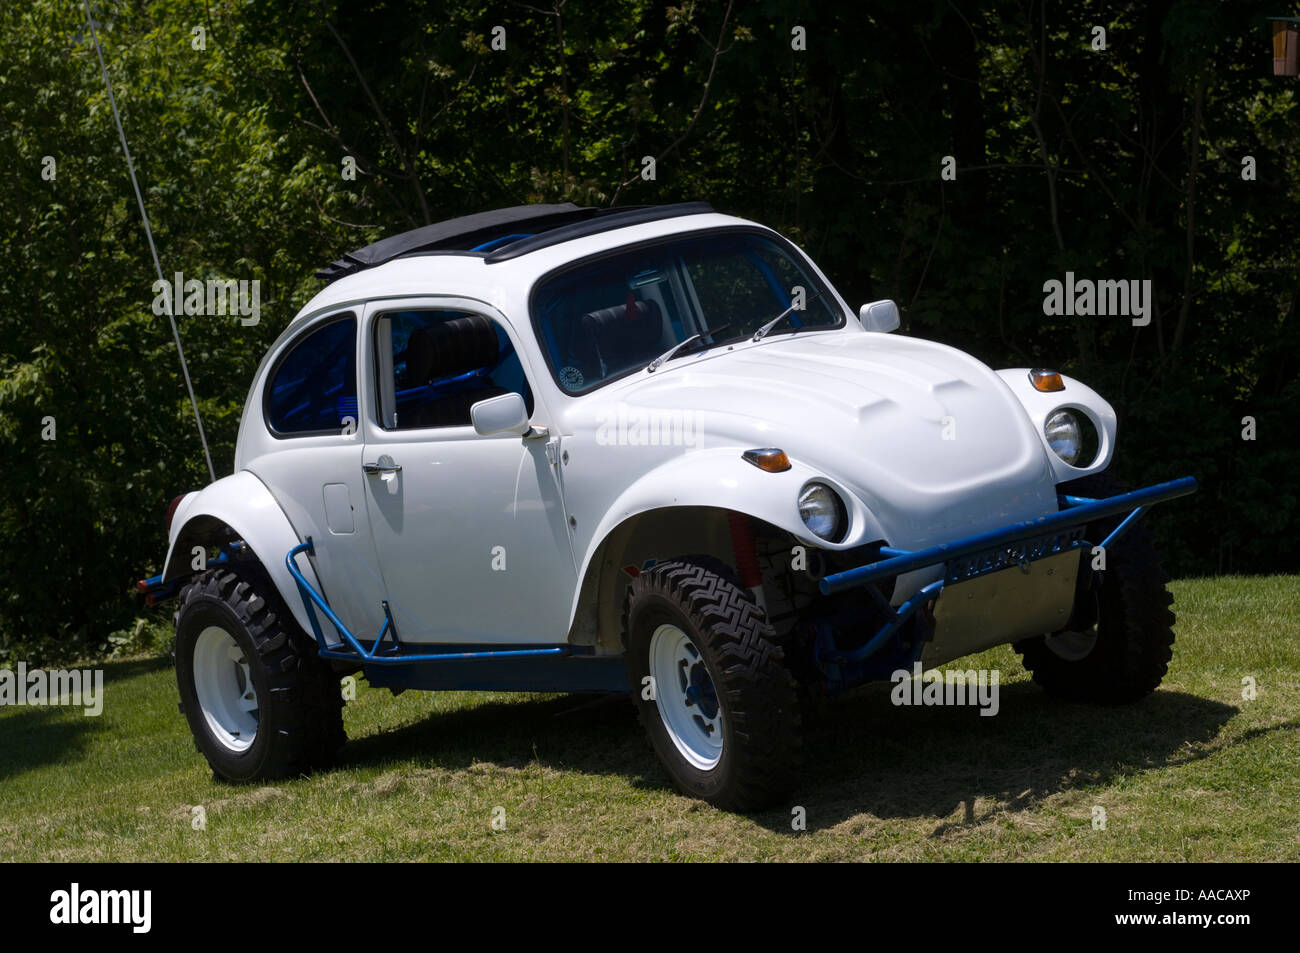 Volkswagen Beetle Modified Car High Resolution Stock Photography And Images Alamy